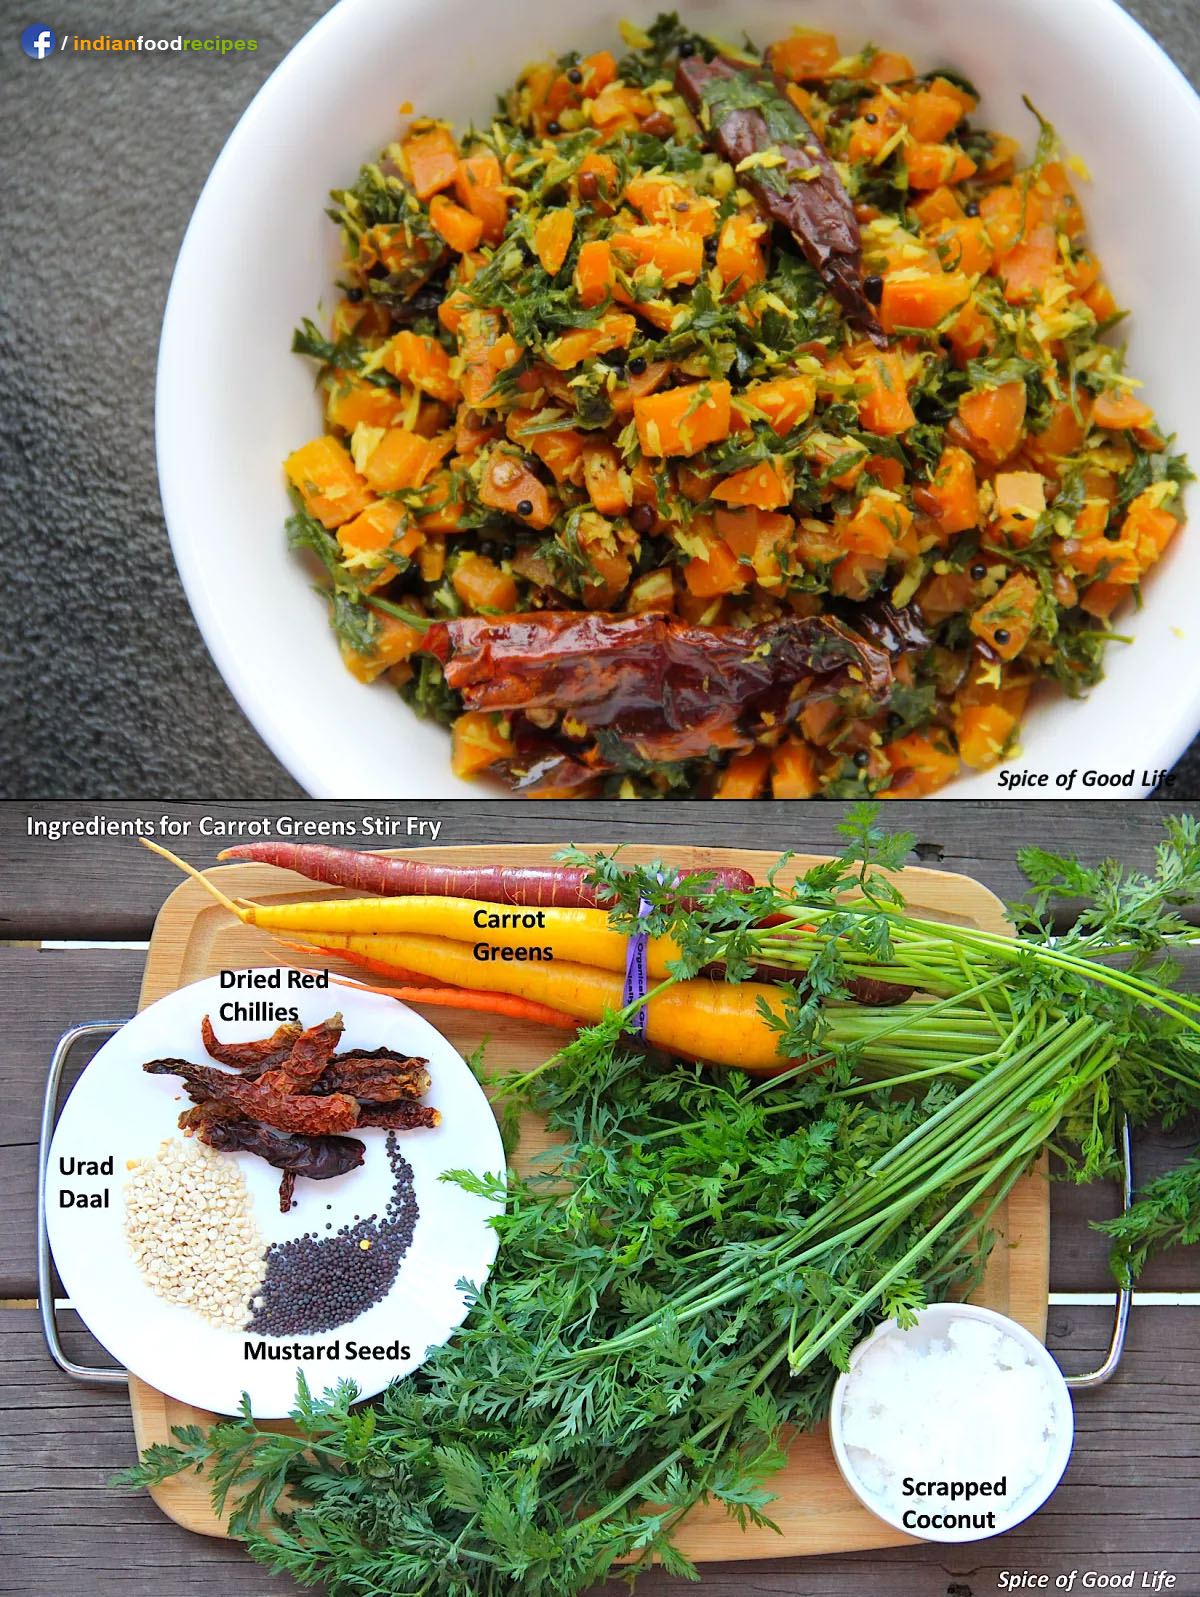 Indian Style Carrot Greens Stir-Fry recipe step by step